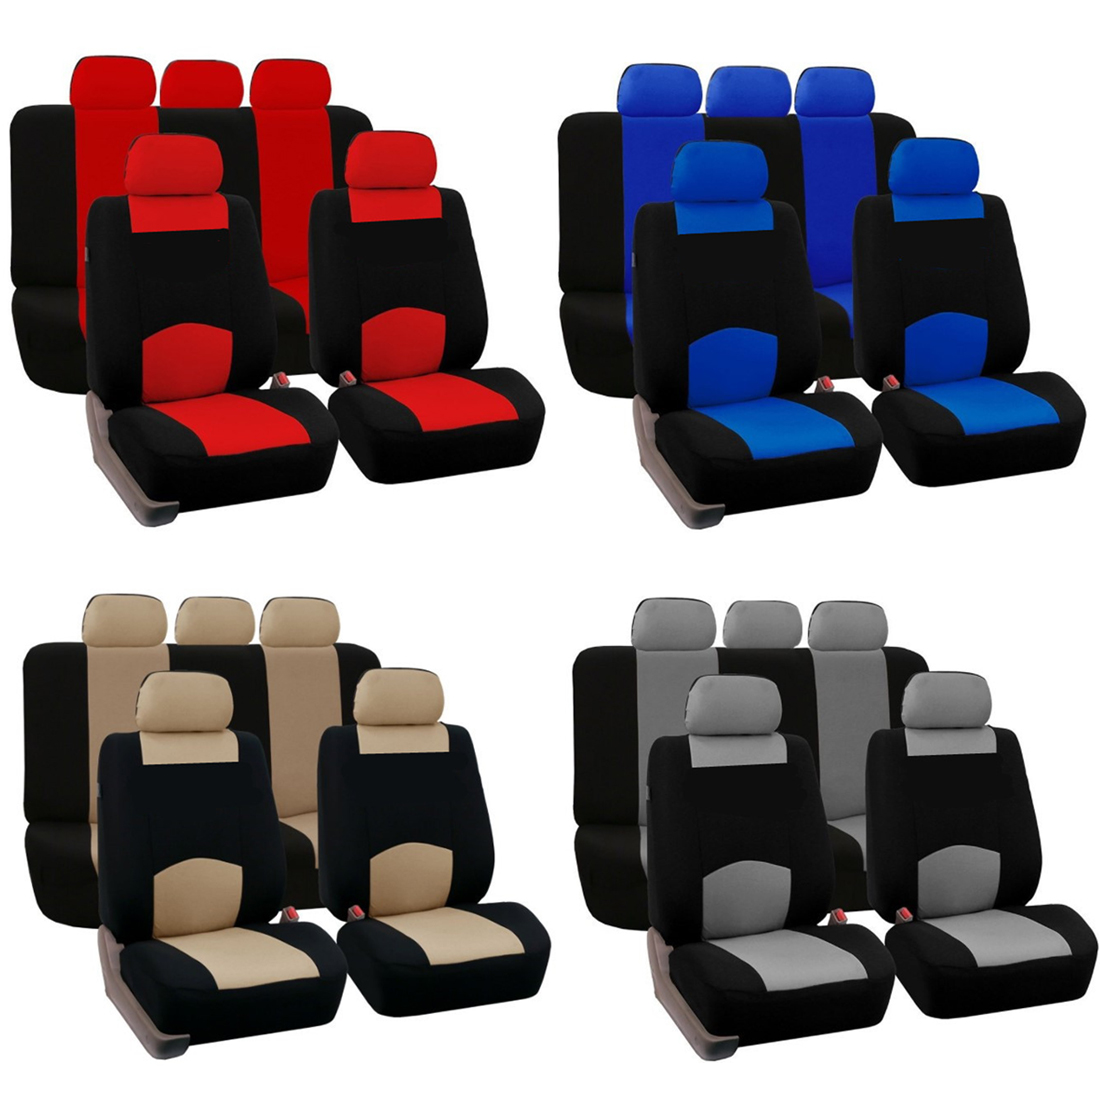 Dewtreetali Front Rear Car Seat Covers Universal Seat Protector Four Seasons Interior Accessories for VW LADA OPEL AUDI BMW 11 pc charcoal scottsdale seat covers front rear l cargo rubber mats universal